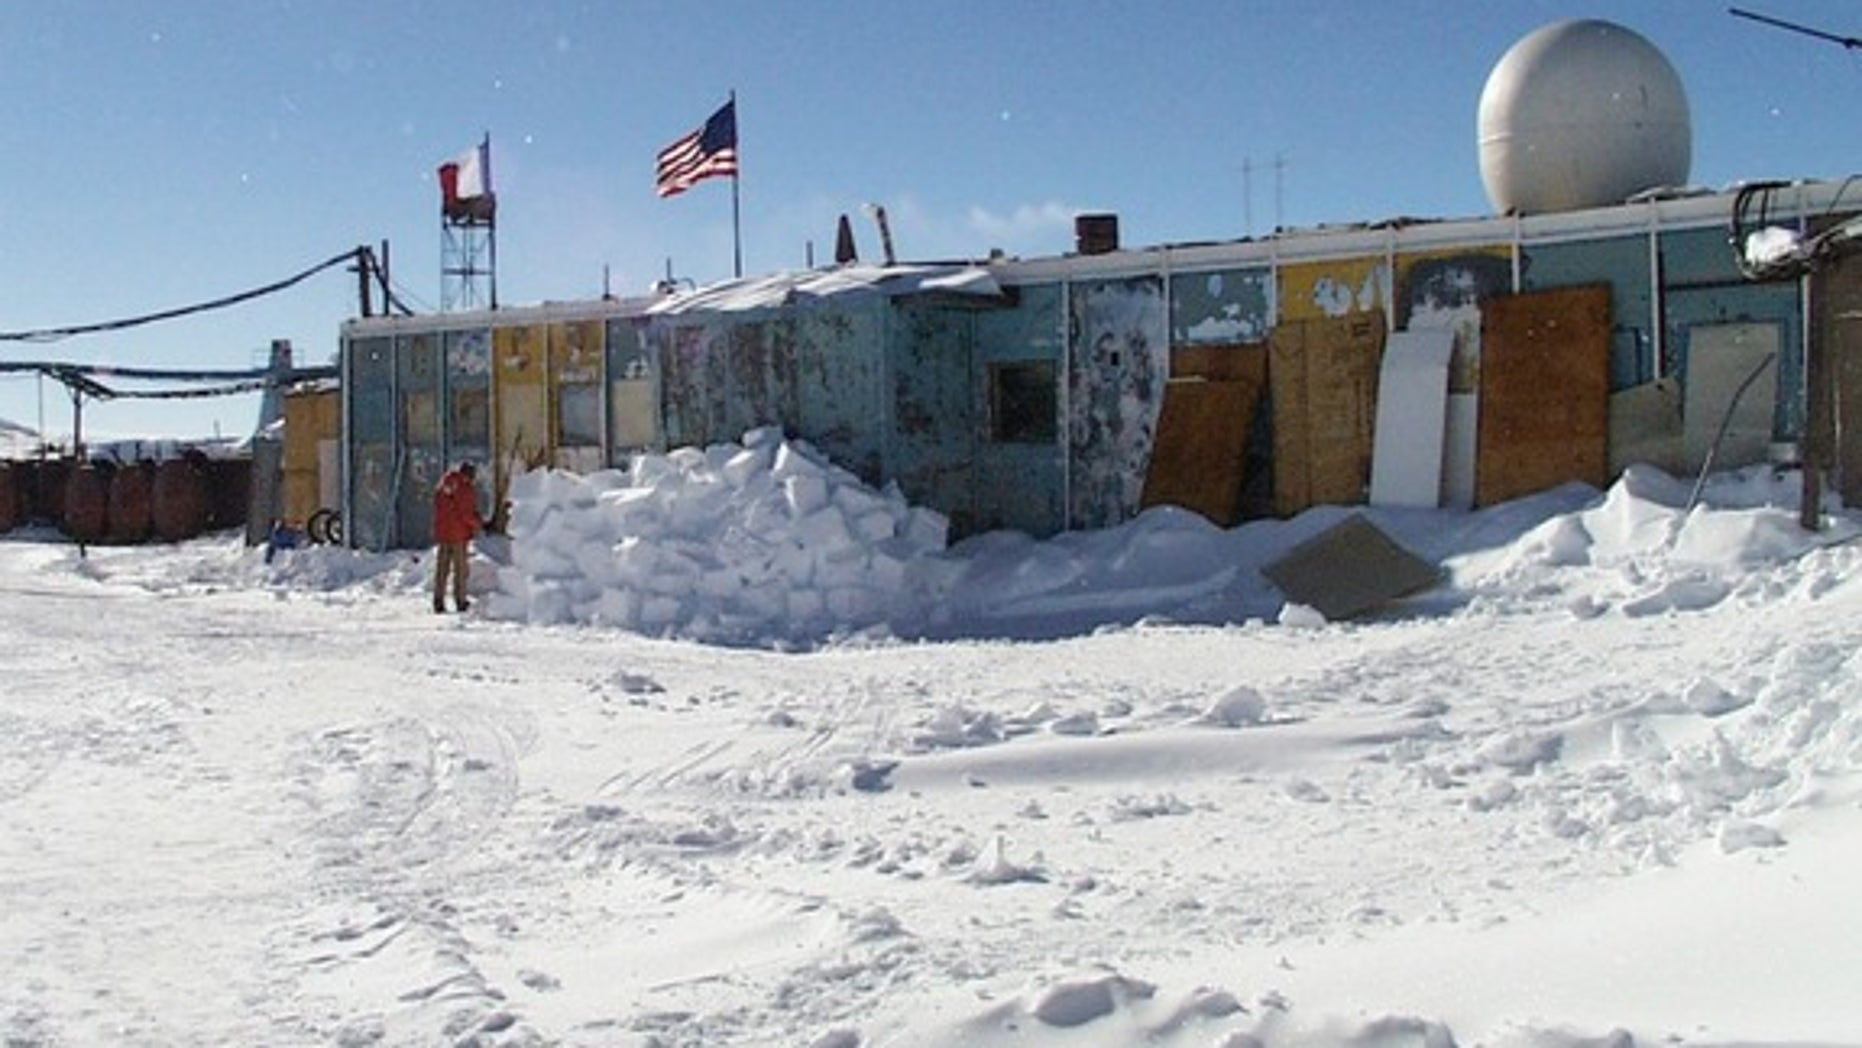 Russia's Vostok Station, in a photograph taken during the 2000 to 2001 field season.